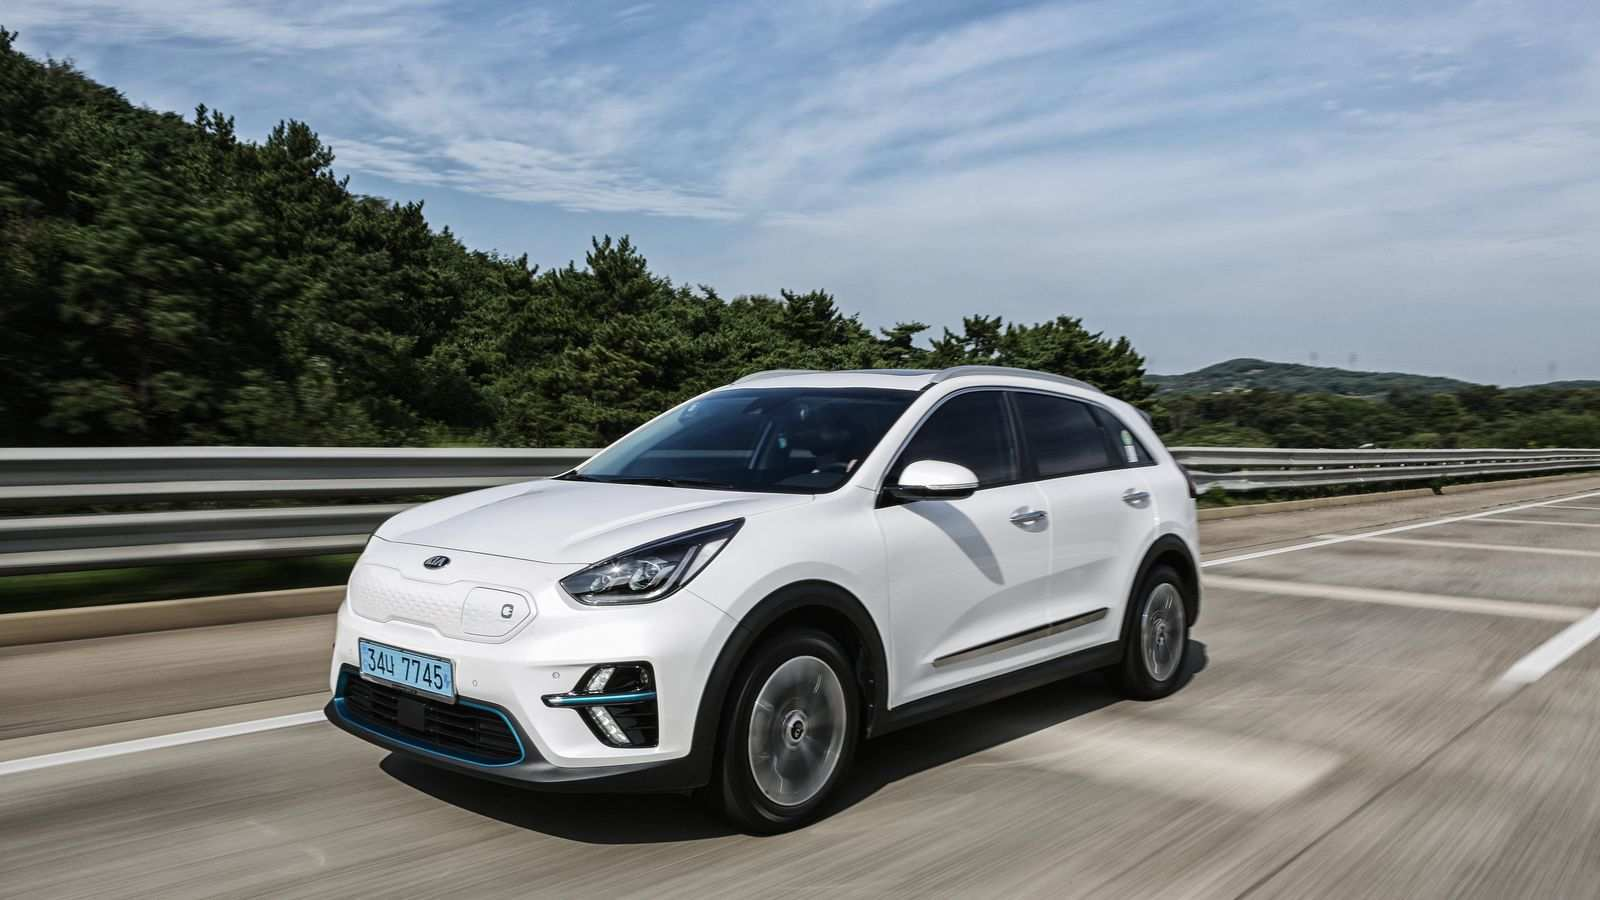 72 Great 2019 Kia Niro Ev Release Date Spy Shoot by 2019 Kia Niro Ev Release Date